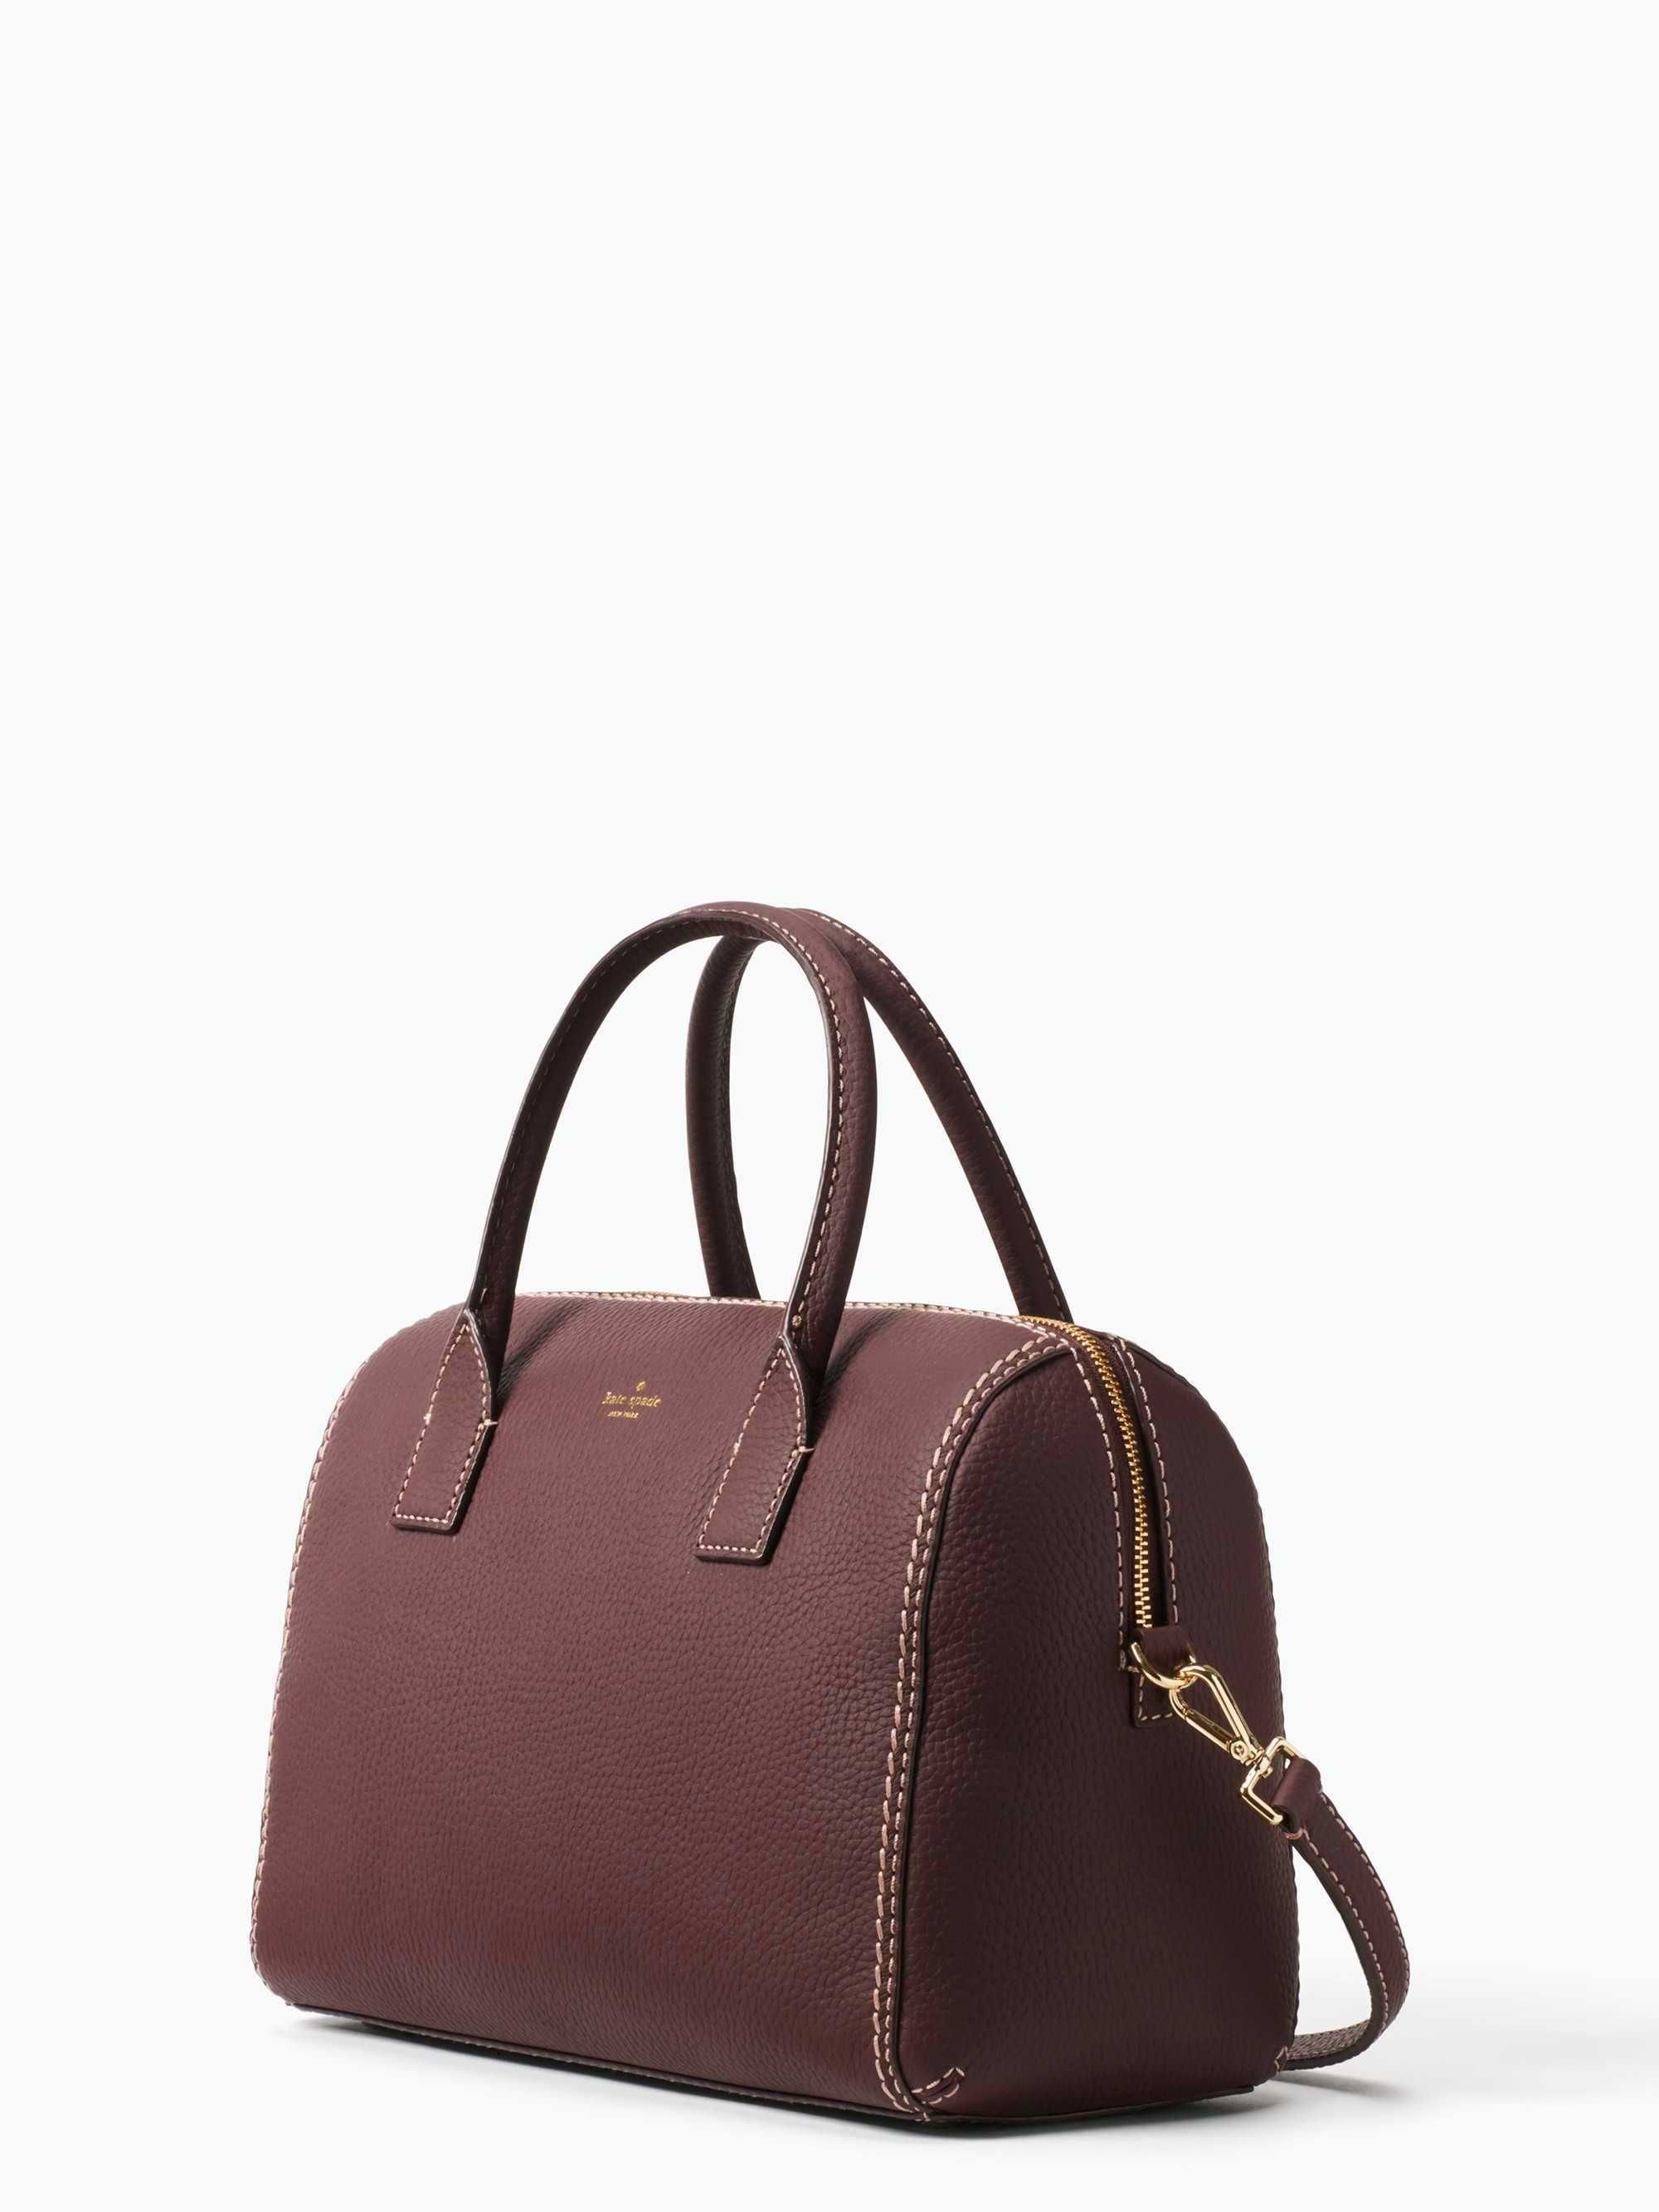 Kate Spade Bag For Sale Philippines Kate Kate Spade Outlet